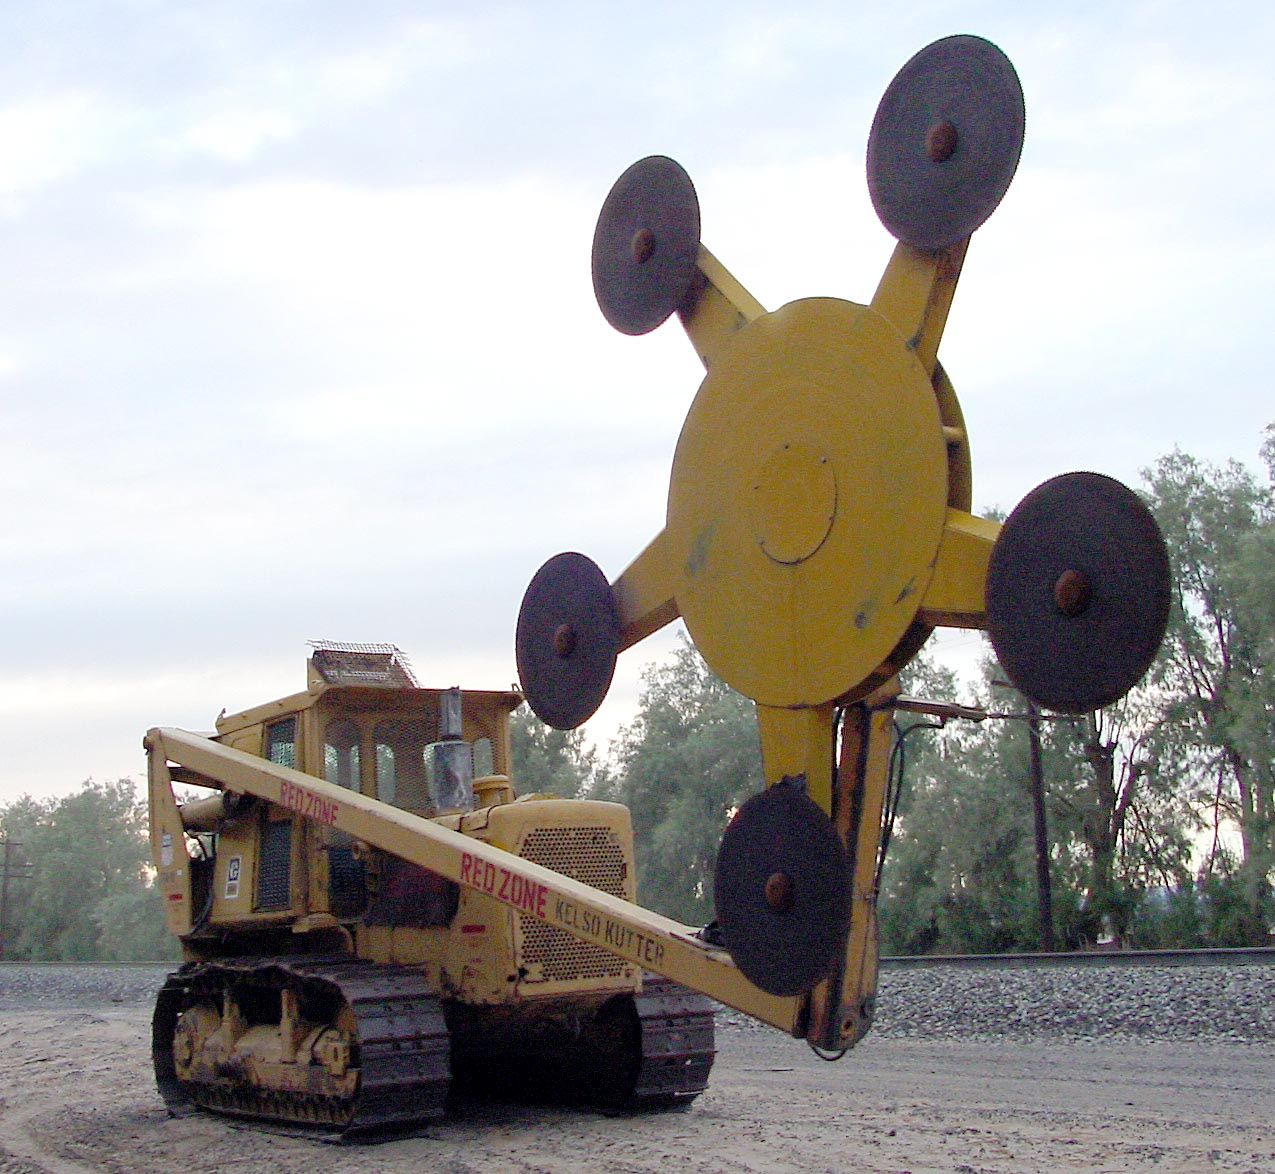 This tank is wielding rotating buzz saw blades of death.